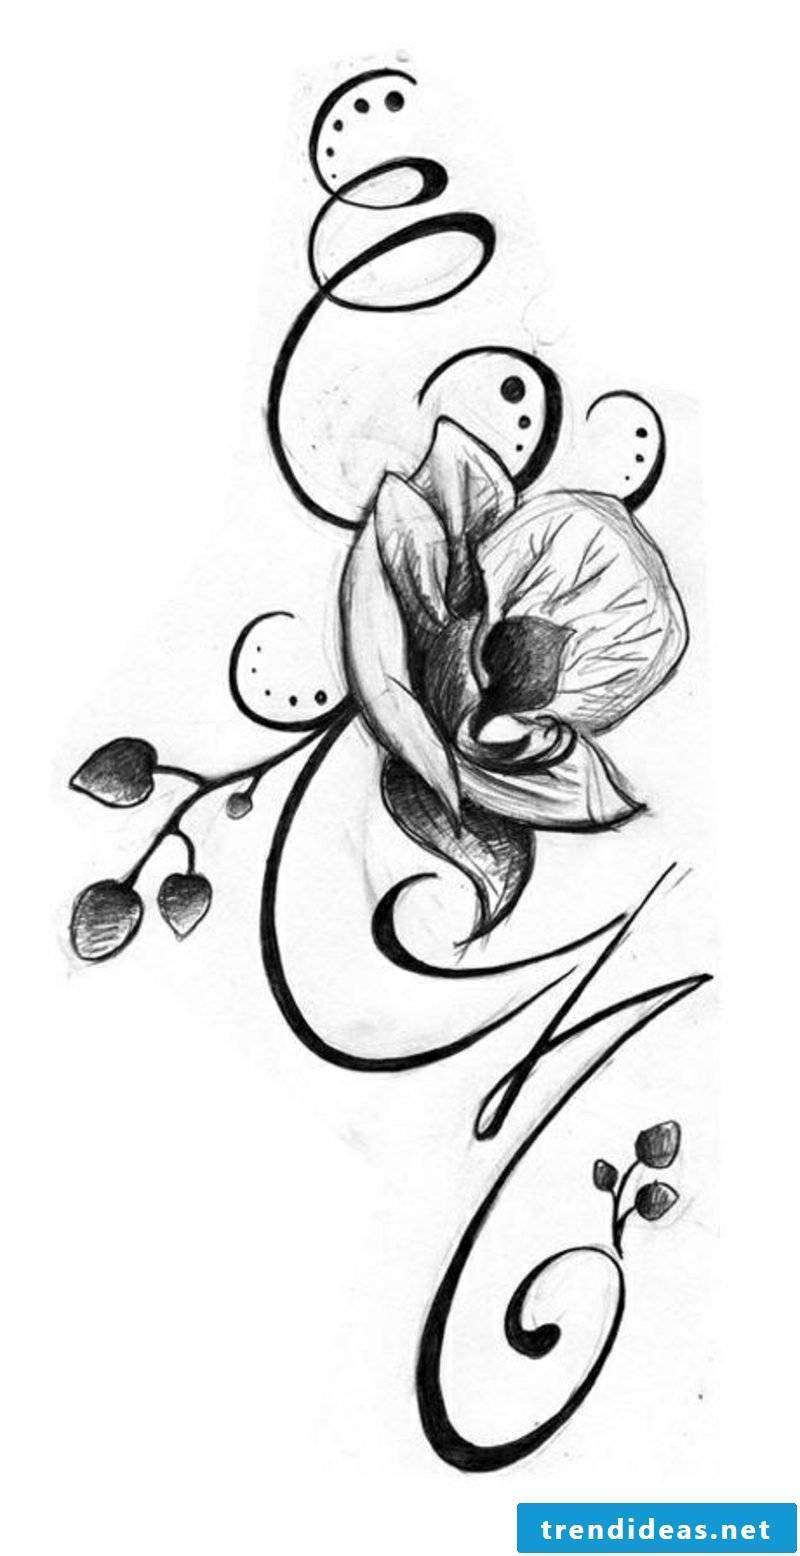 Flower tendril tattoo template orchid ideas for women